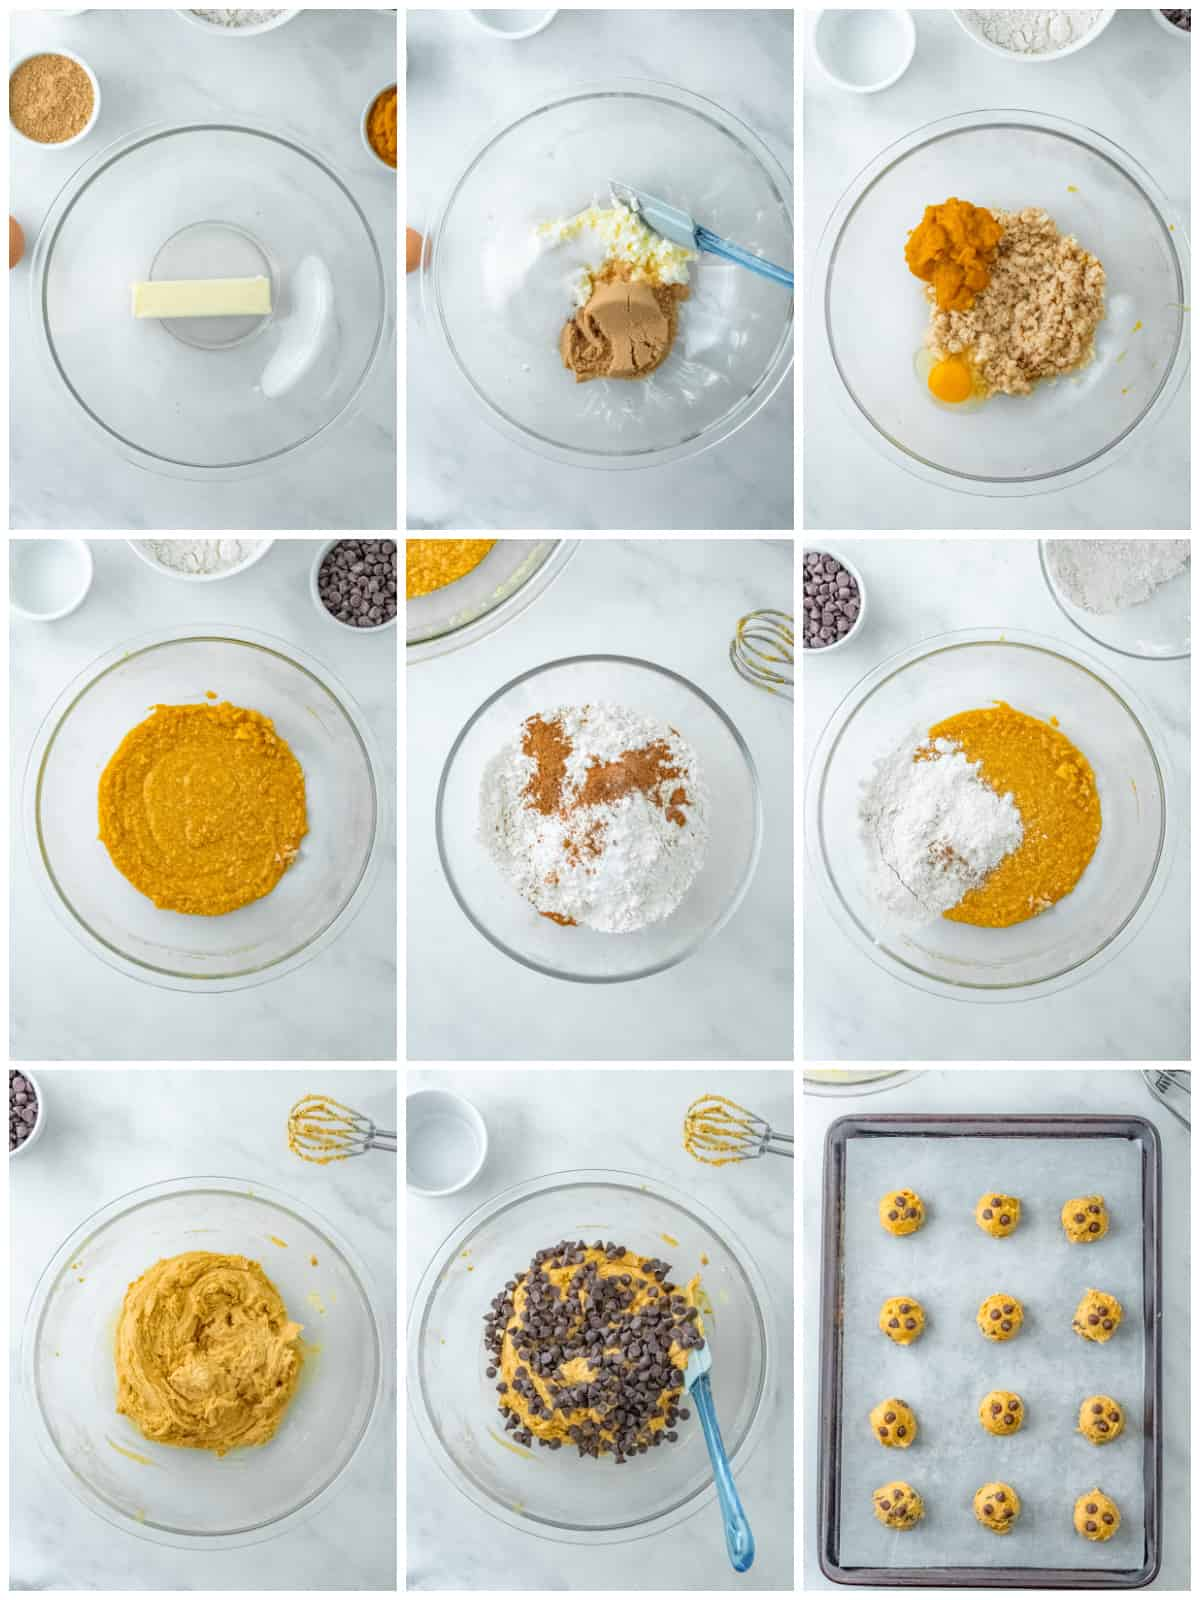 Step by step photos on how to make Pumpkin Chocolate Chip Cookies